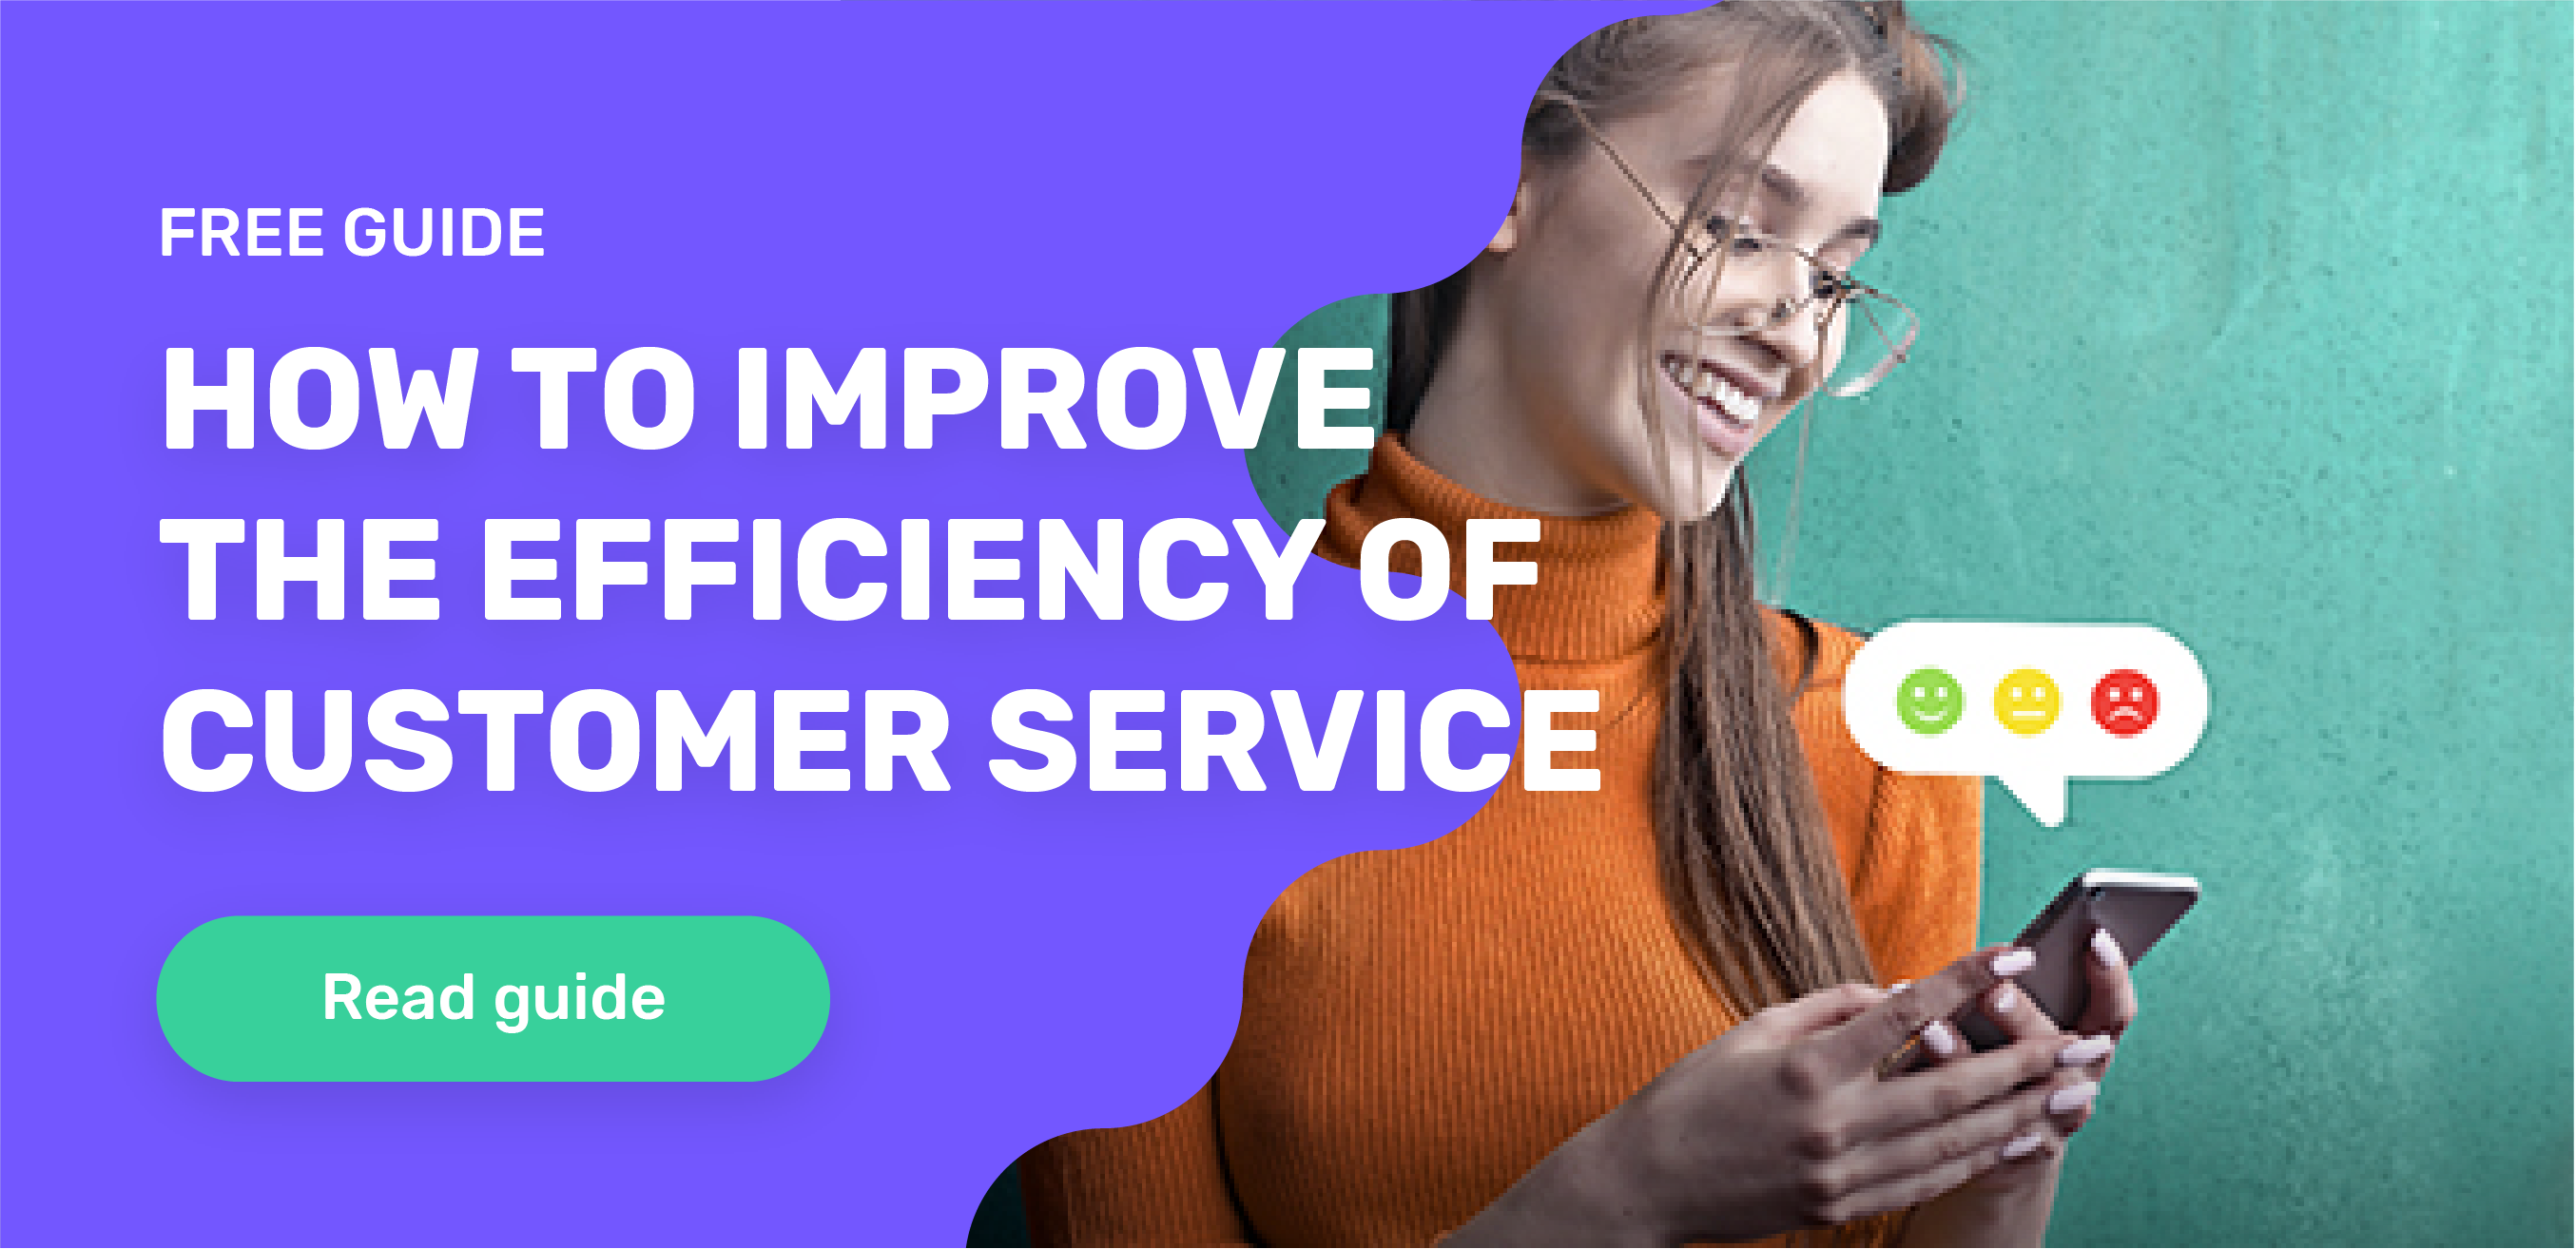 The How-to Guide for Customer Service Efficiency